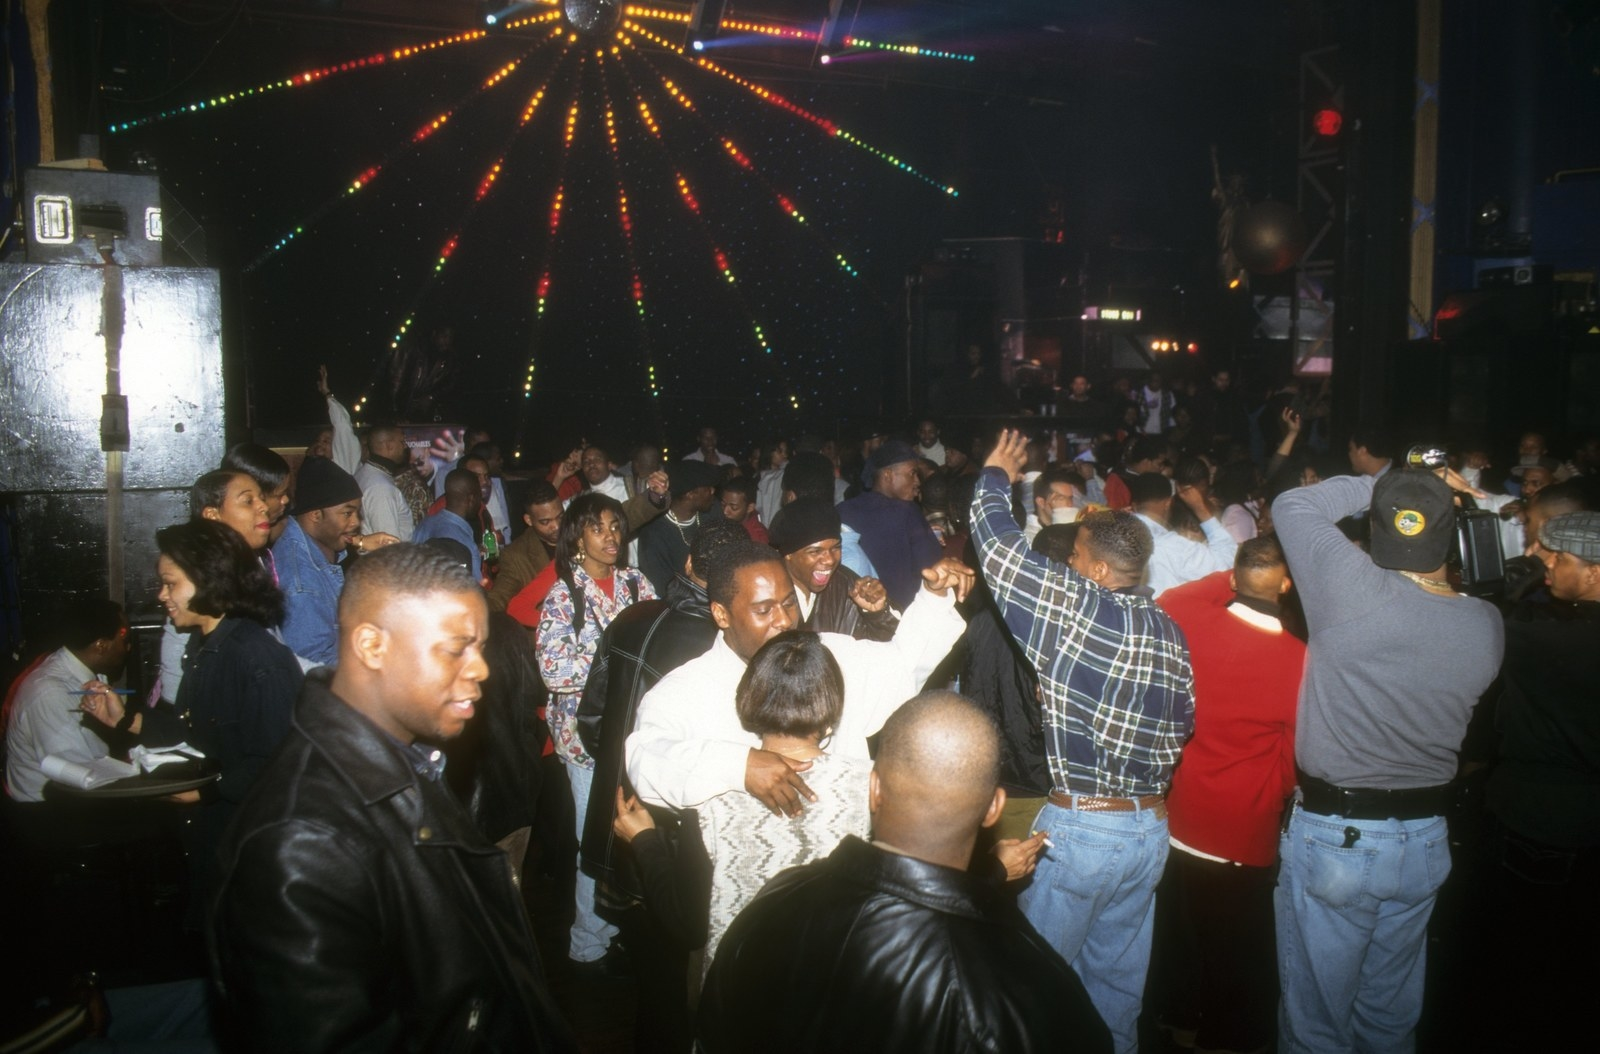 Crowds dance at a party at Club Expo, 1995.